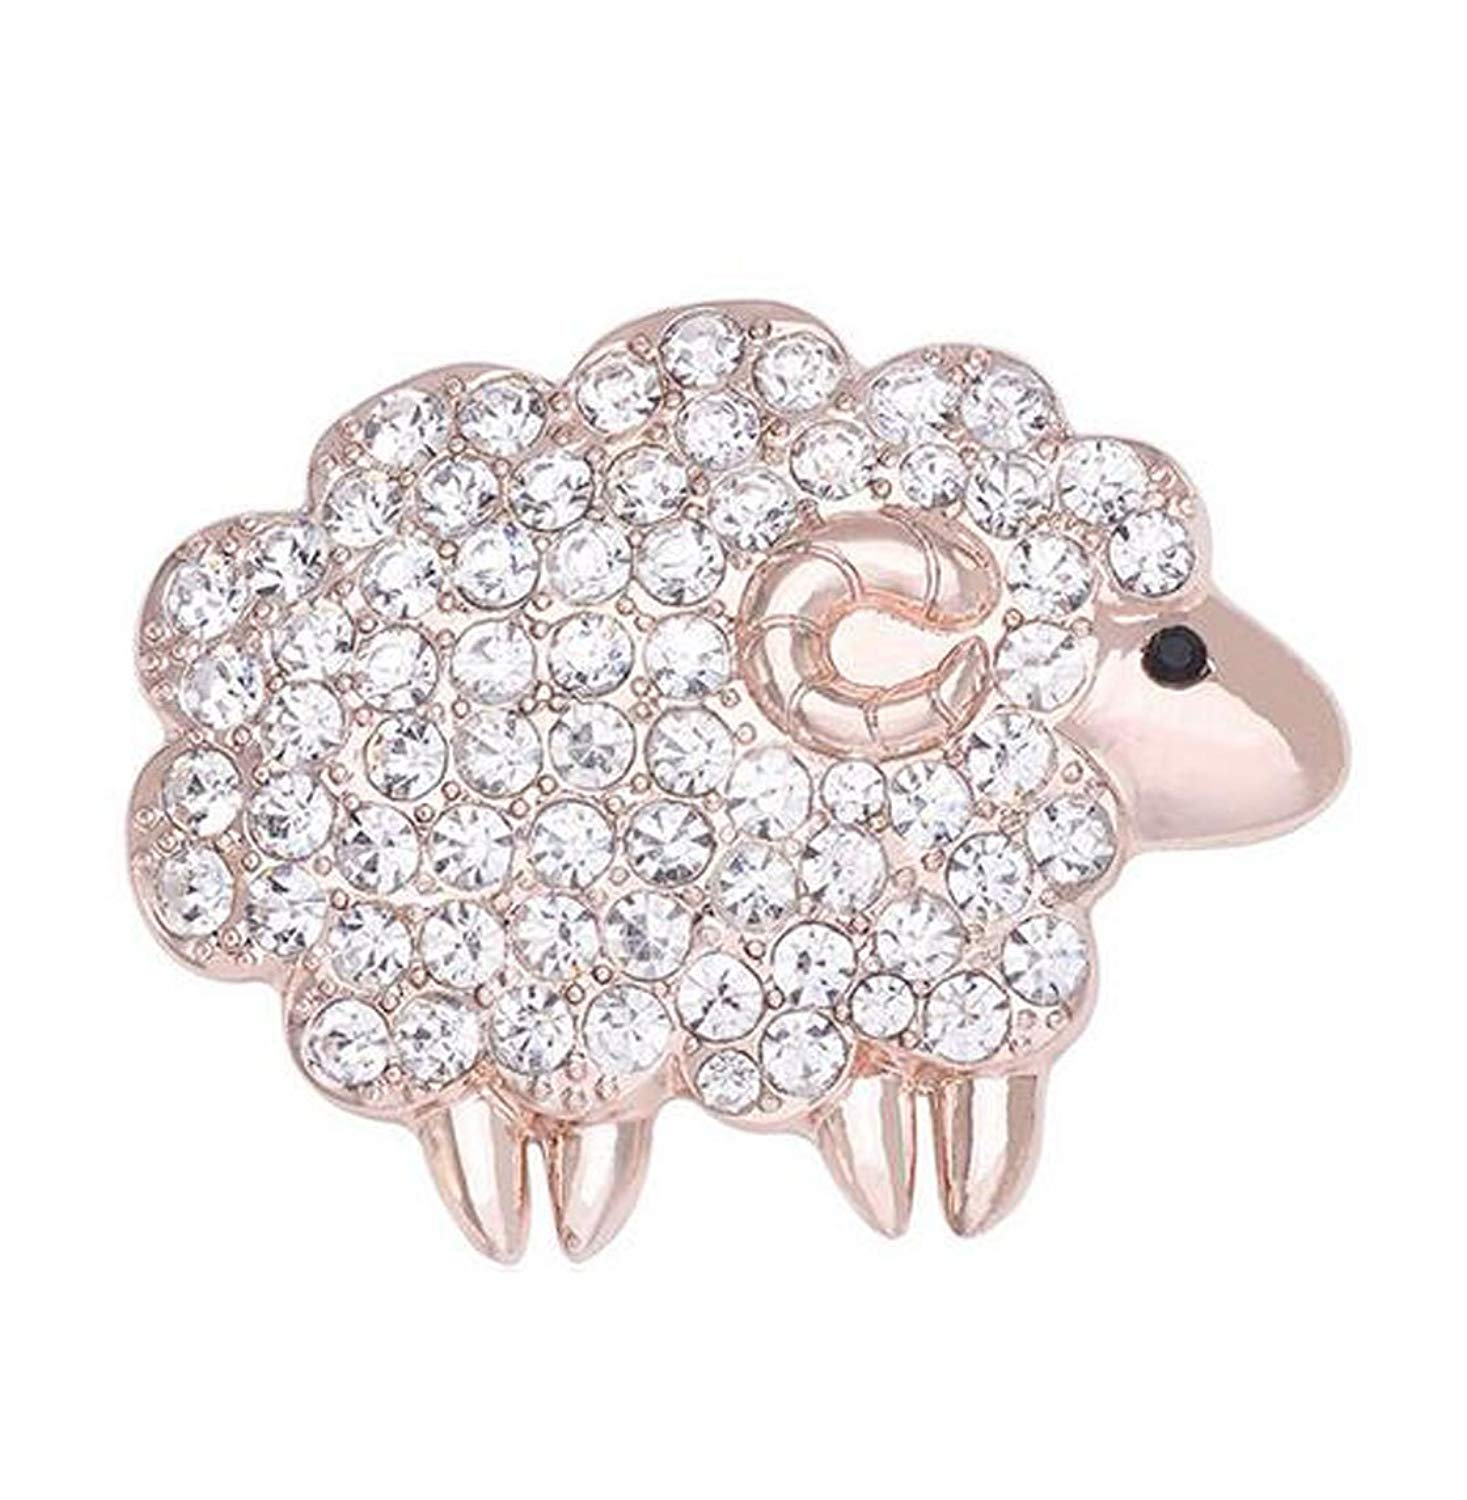 Zmdnys Prime Deals Sheep Brooch Jewelry Fashion Women Alloy Crystal Brooch Pins